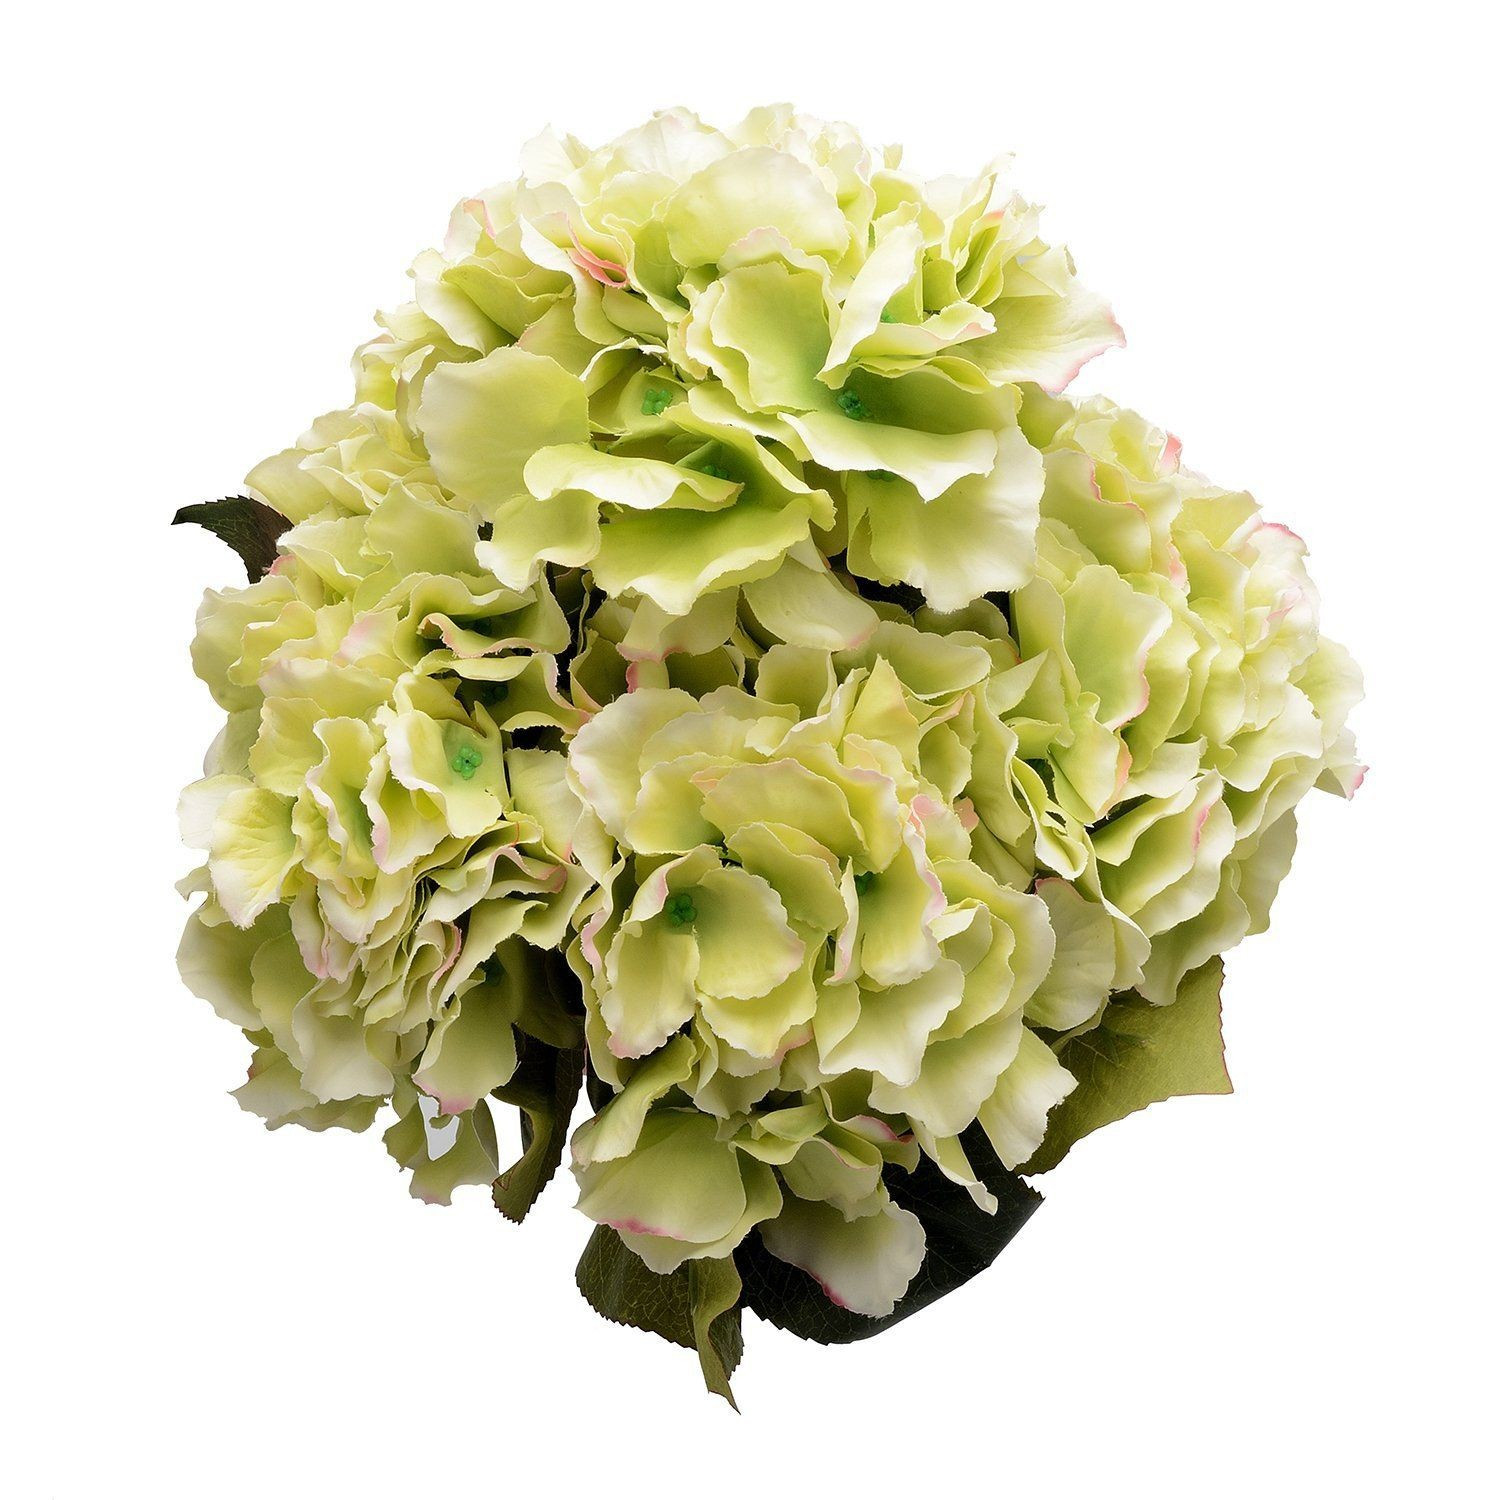 artificial flowers without vase of hydrangea decorations wedding unique cool wedding ideas as for h inside hydrangea decorations wedding luxury derker silk artificial hydrangea bouquet 5 big heads hydrangea of hydrangea decorations